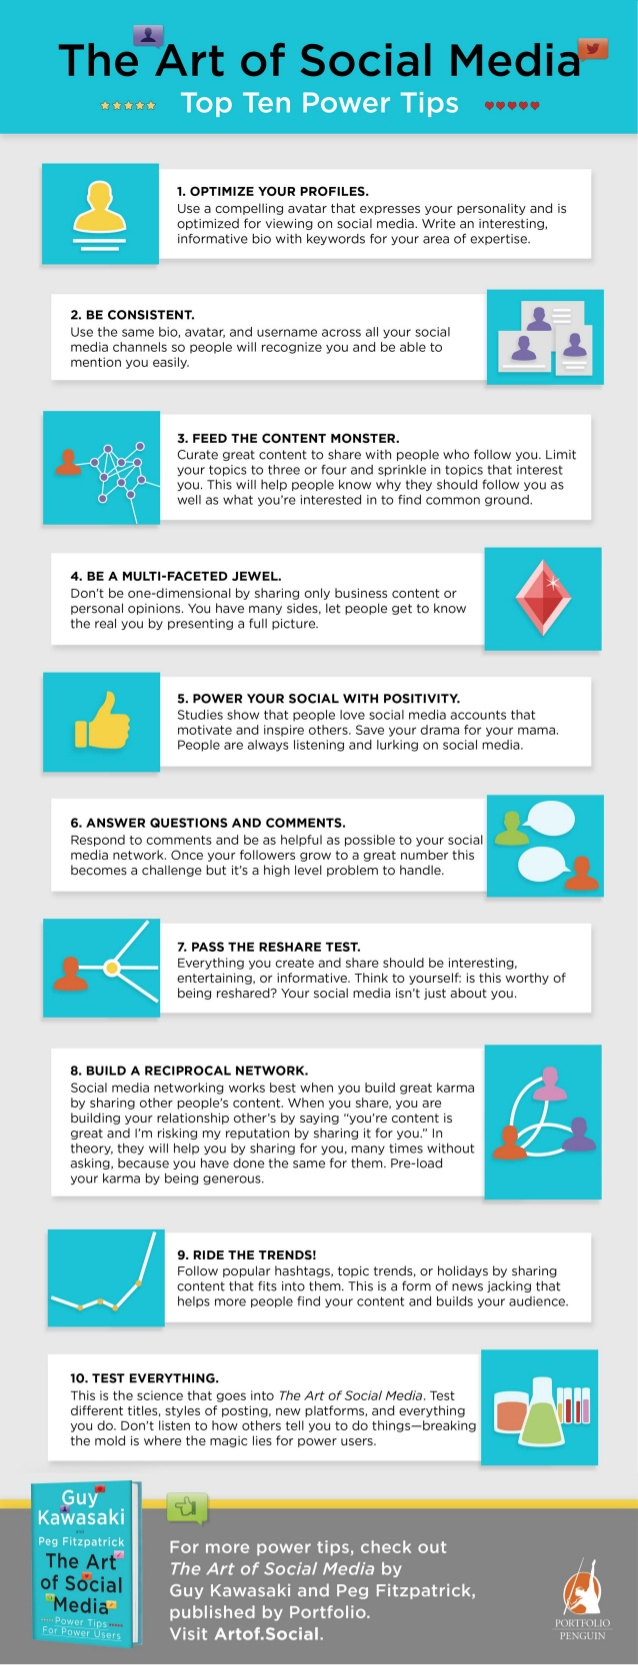 10 Power Tips to Master the Art of Social Media